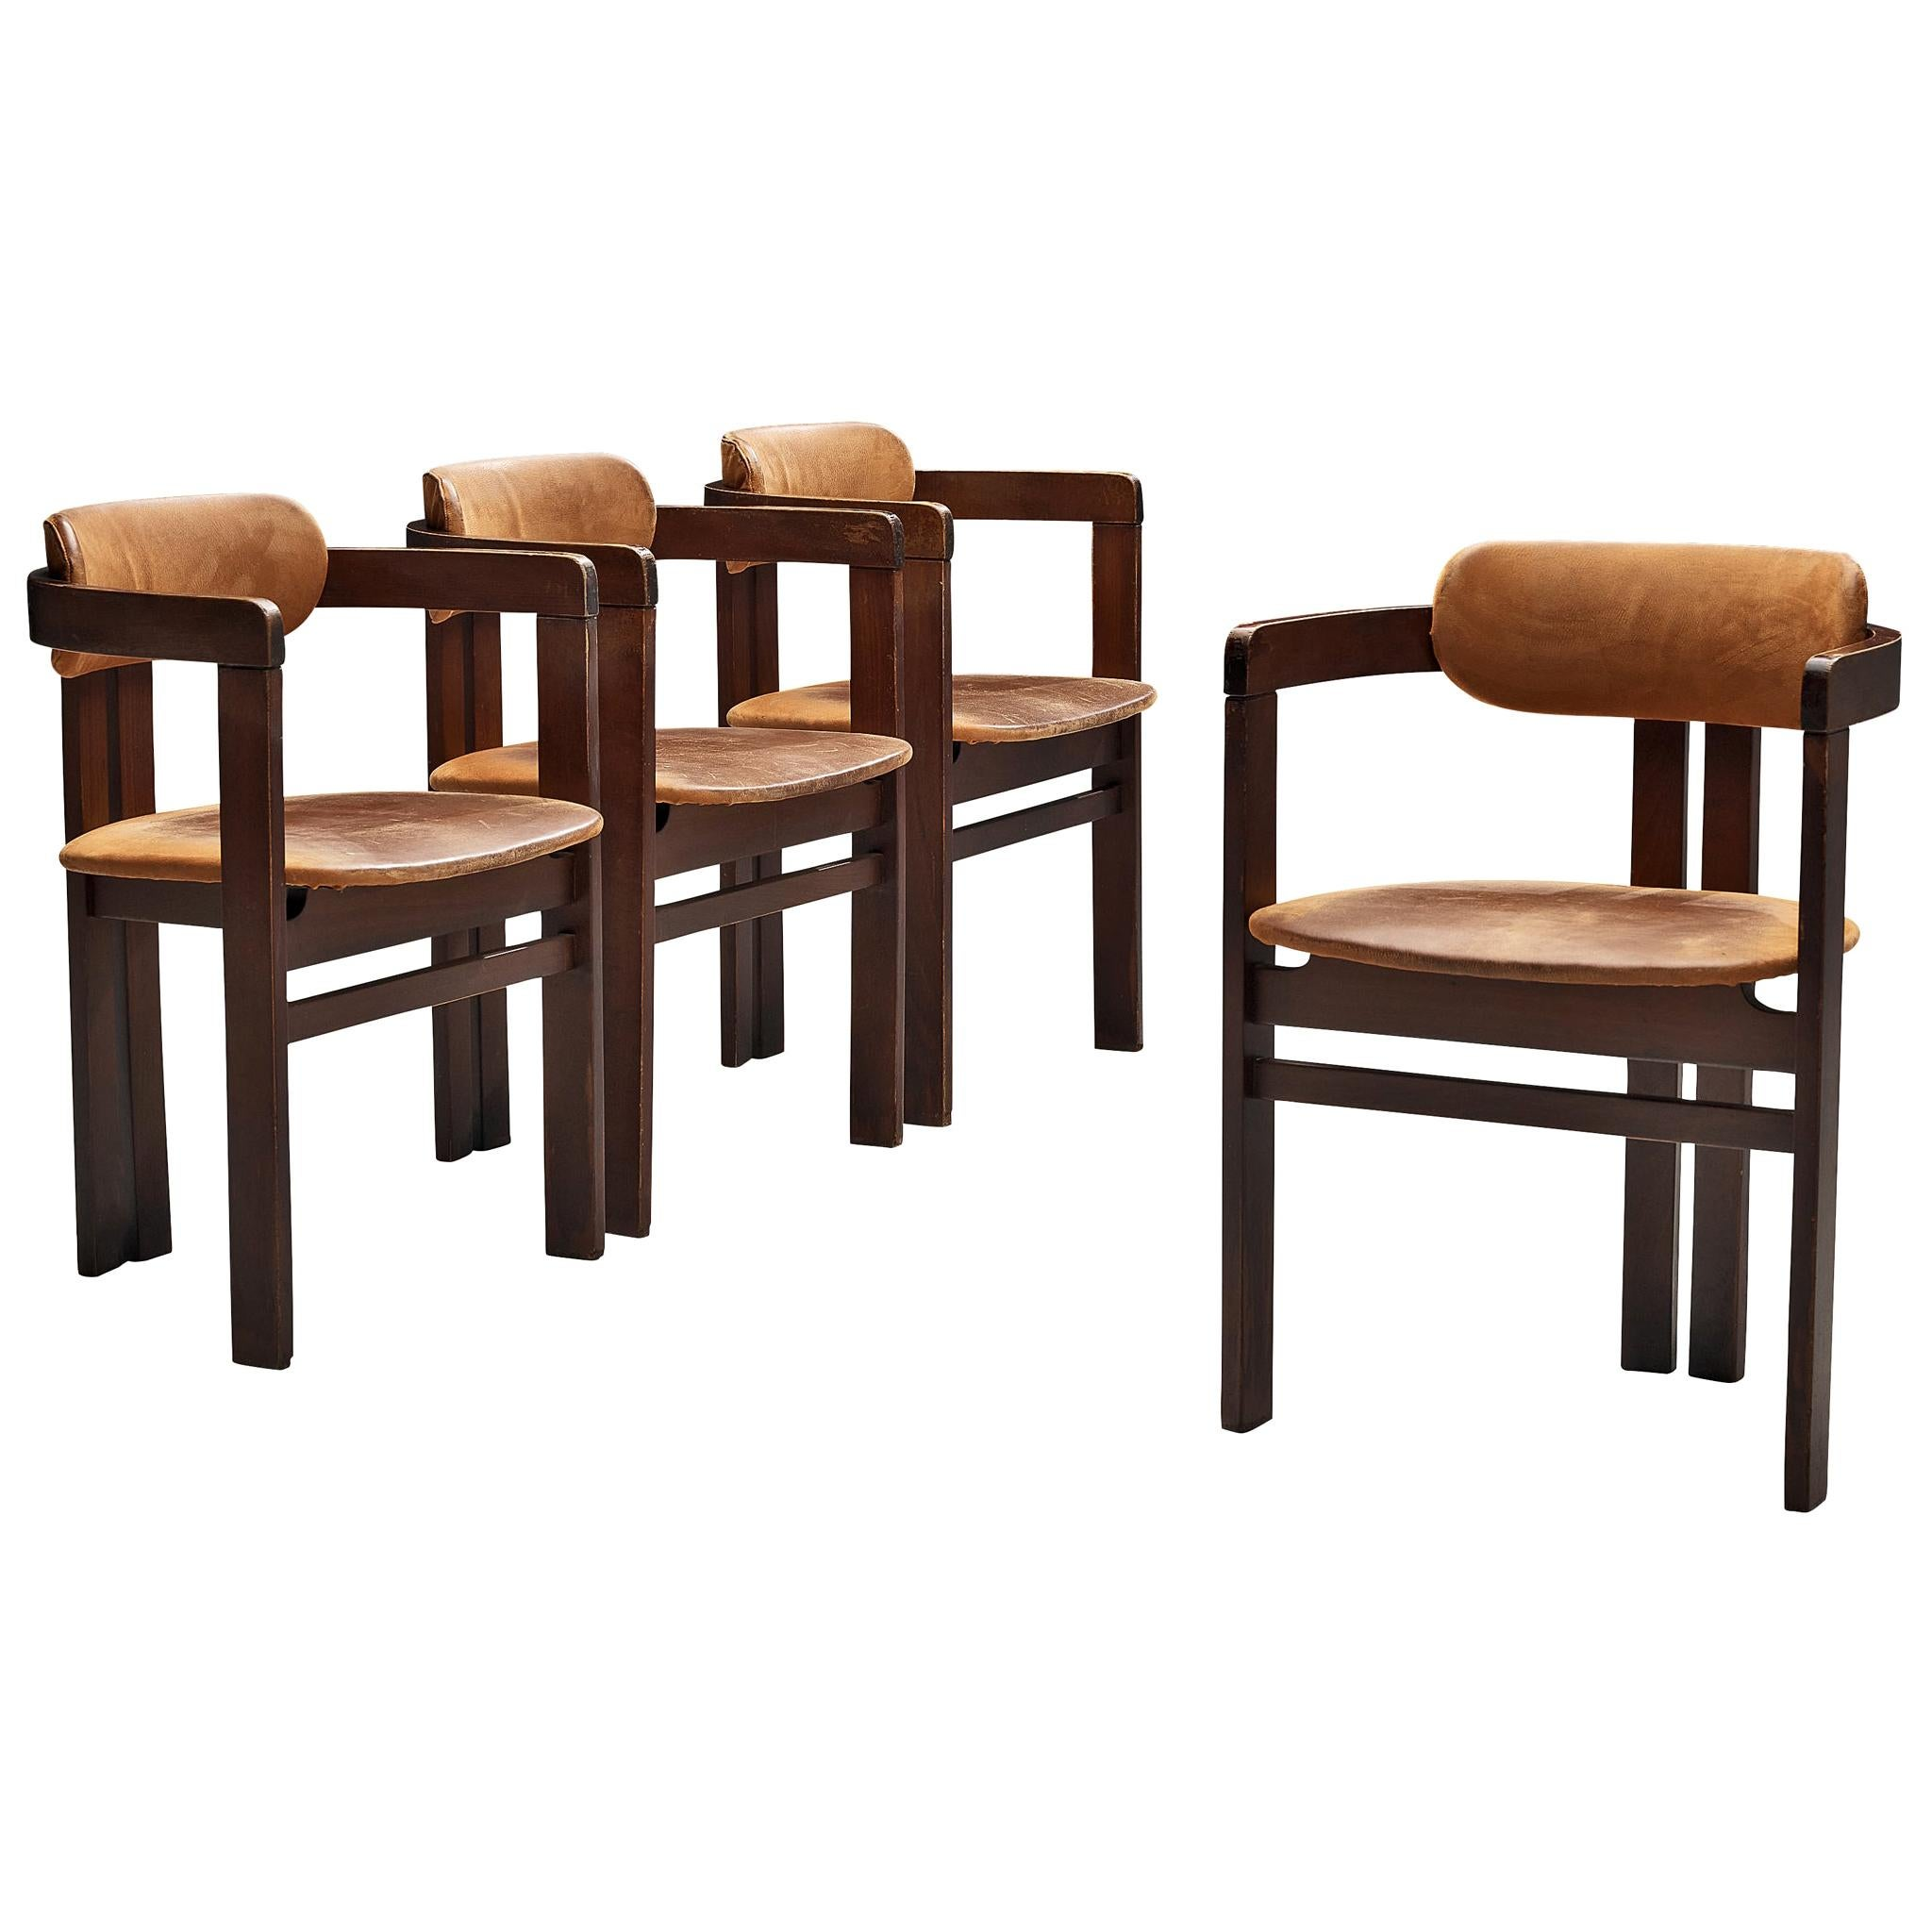 Italian Armchairs with Architectural Bentwood Frame